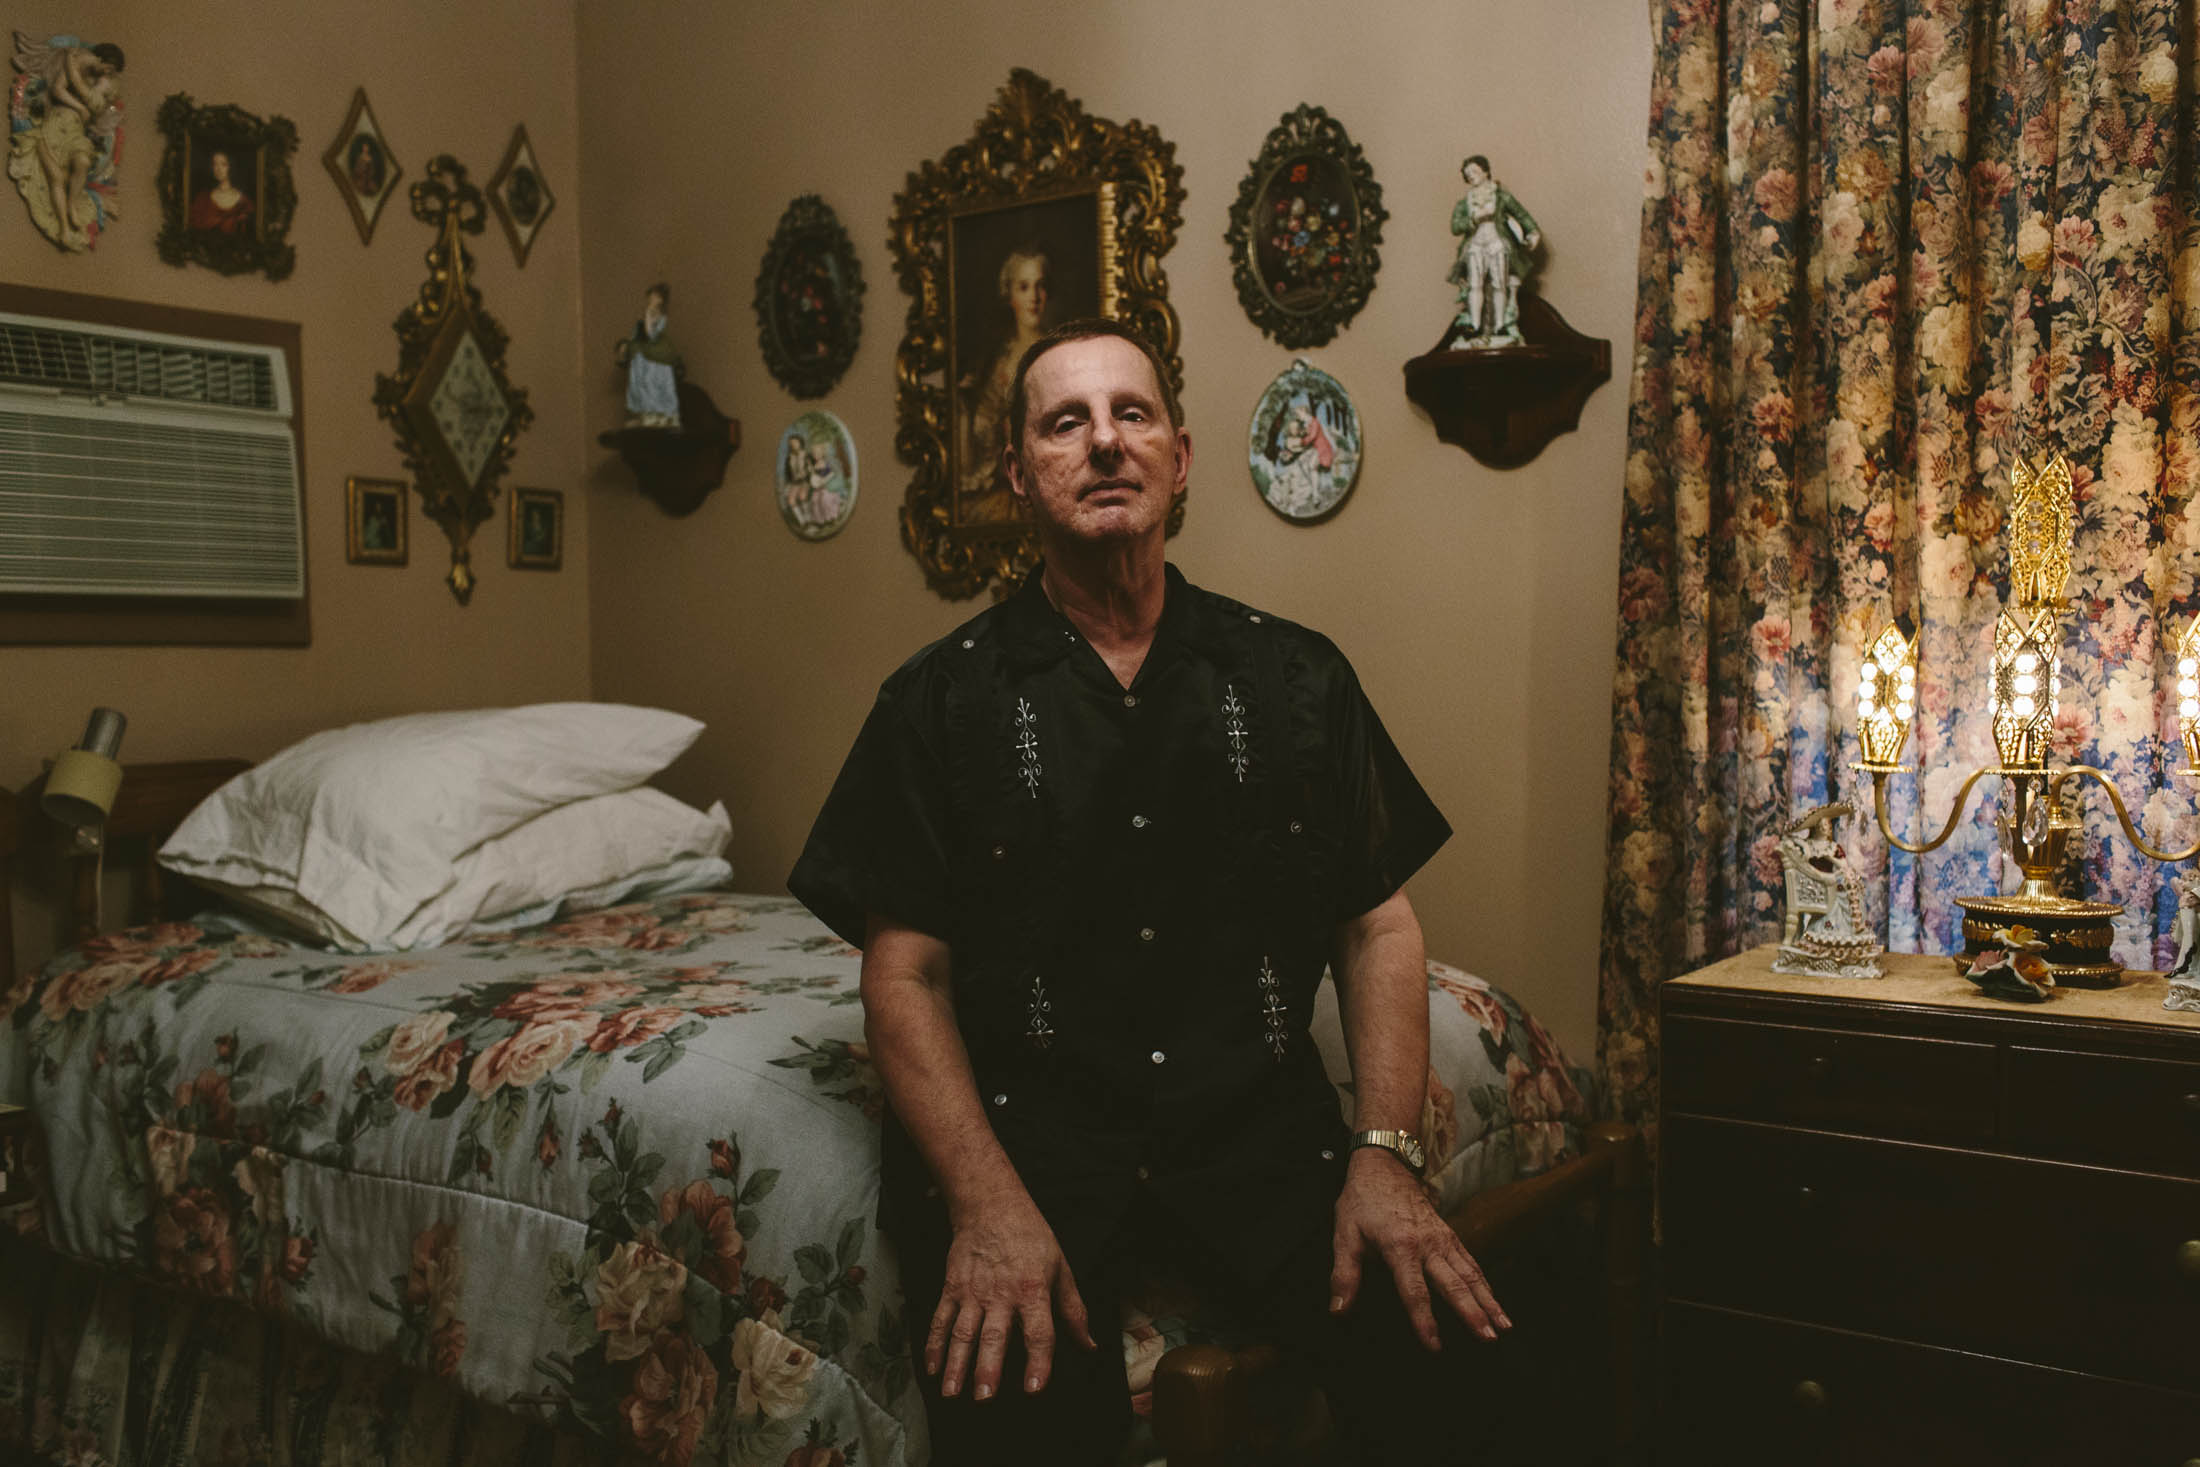 Churches in the area, including the powerful Catholic Archdiocese, refused to offer support and host the funeral service for victims. Dufrene, a Catholic at the time, now attends Harahan Baptist Church and says he is no longer part of the gay community. He lives in the same house where he was born and where he recovered from the fire.